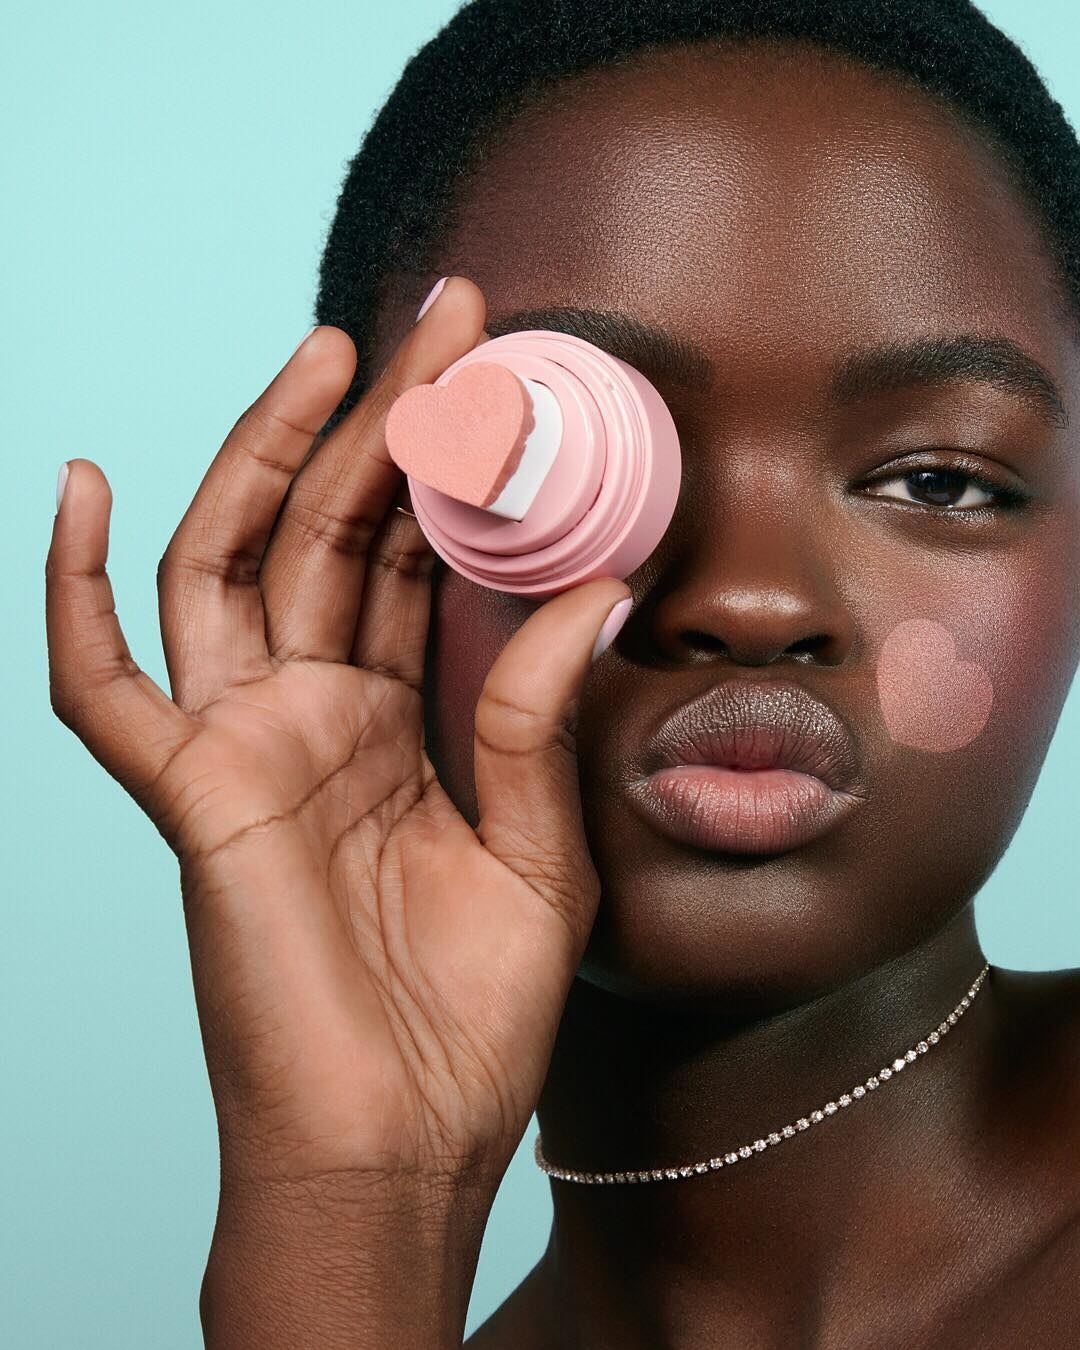 model wears a translucent pink heart on cheek and shows the stamper